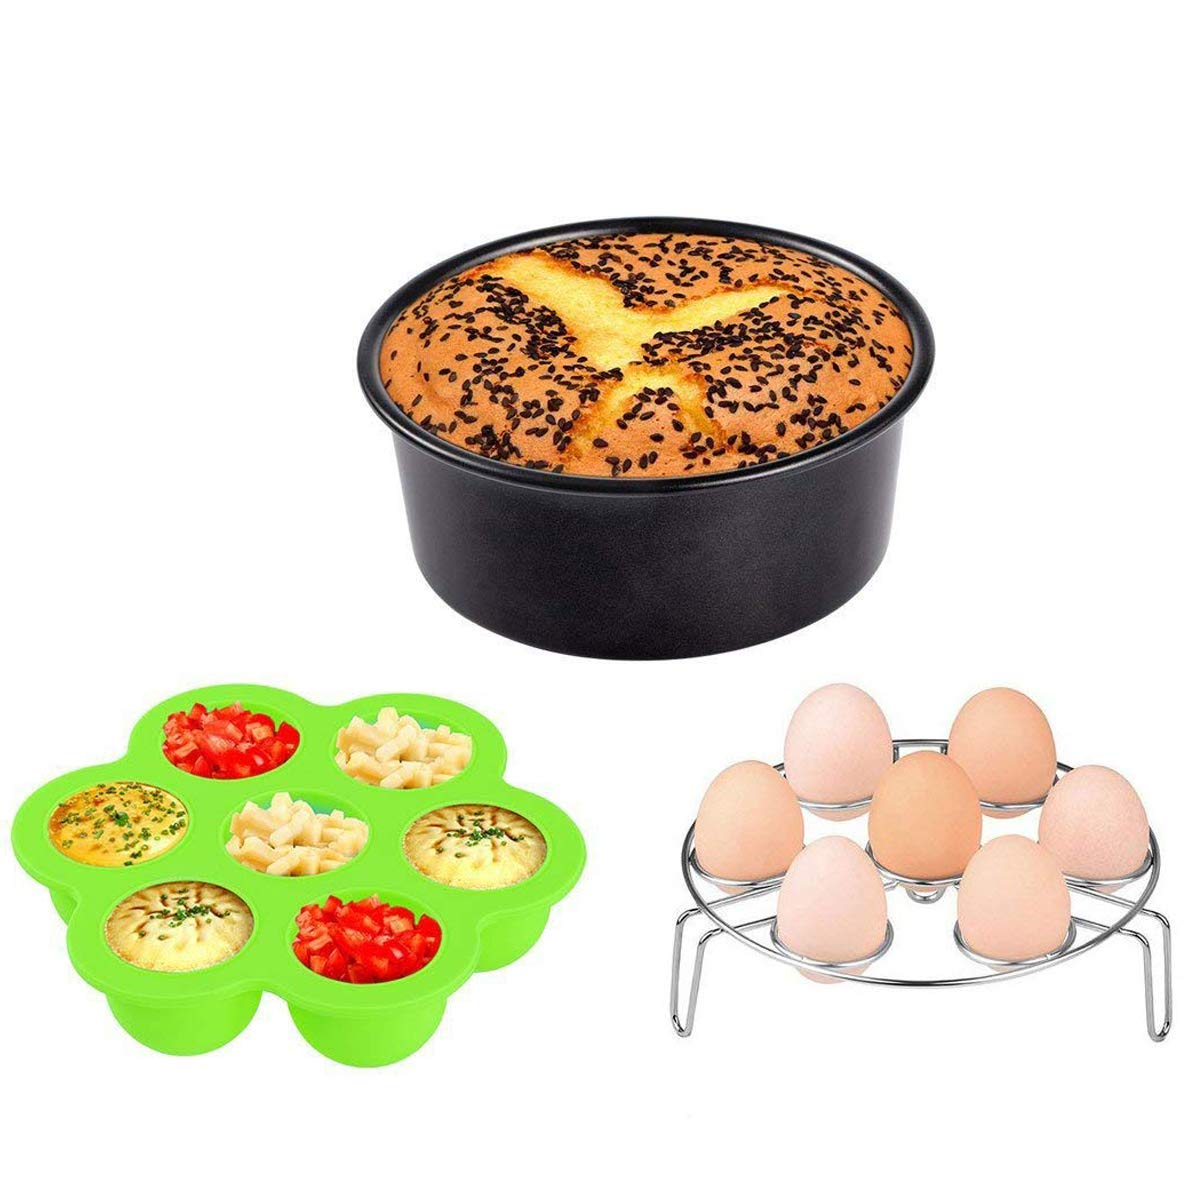 Instant Pot Accessories 3pcs, KINDEN, Silicone Egg Bites Mold with lid+Egg Steamer Rack+ 7 Inch Round Removable Bottom Non-Stick Cake Pan for 5 6 8 Quart Pressure Cooker KD-K10-CA